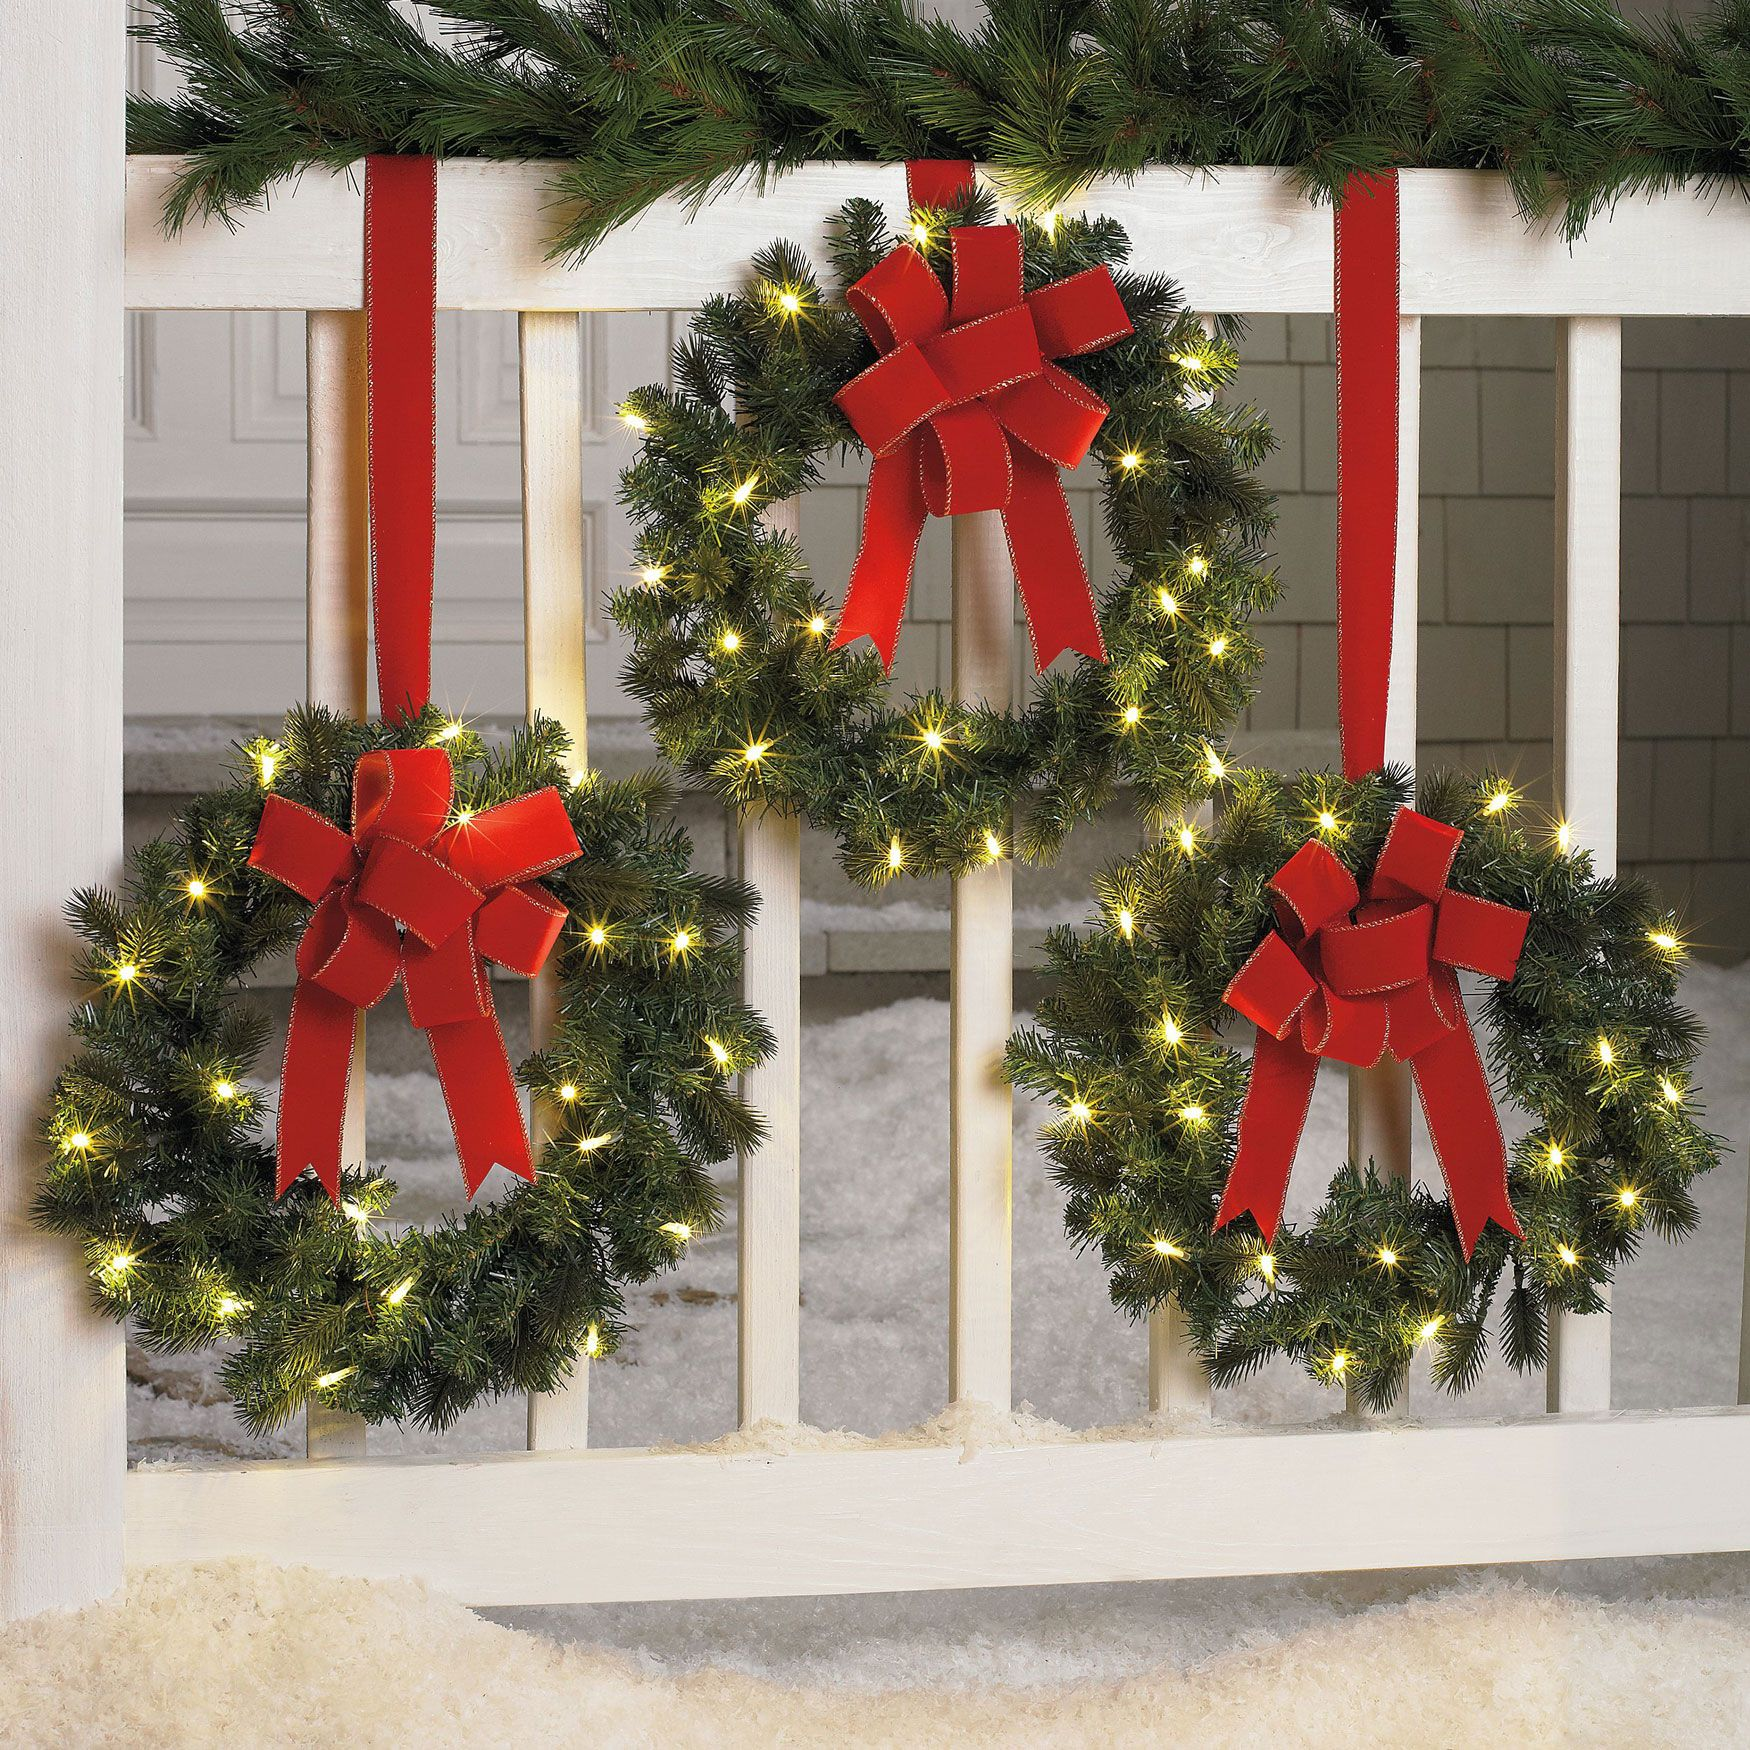 50 Best Outdoor Christmas Decorations For 2016 Outside Christmas Decorations Christmas Wreaths Christmas Wreaths With Lights